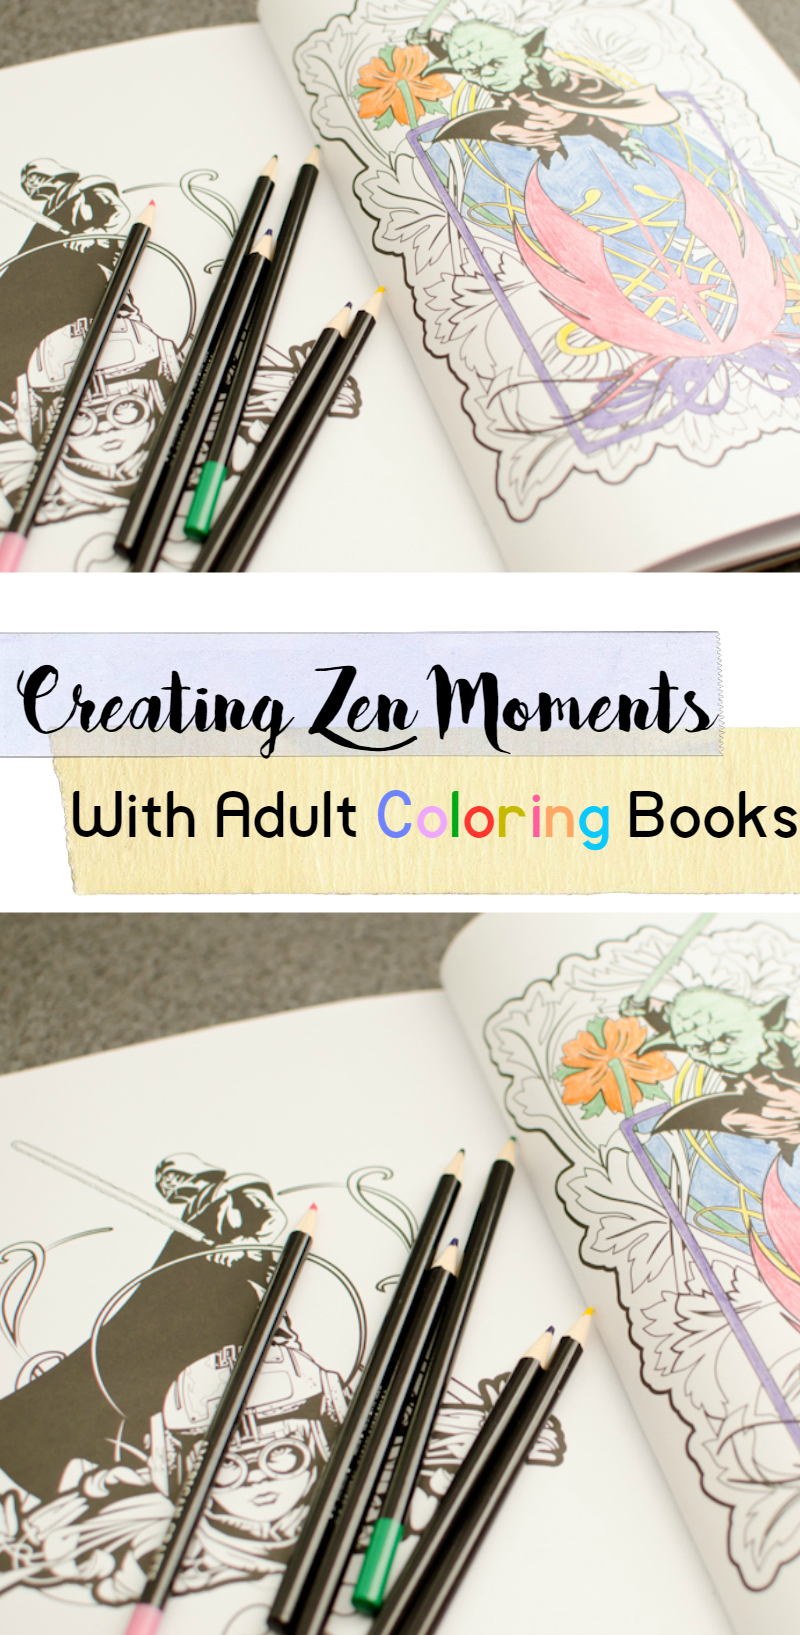 Creating Zen Moments With Adult Coloring Books